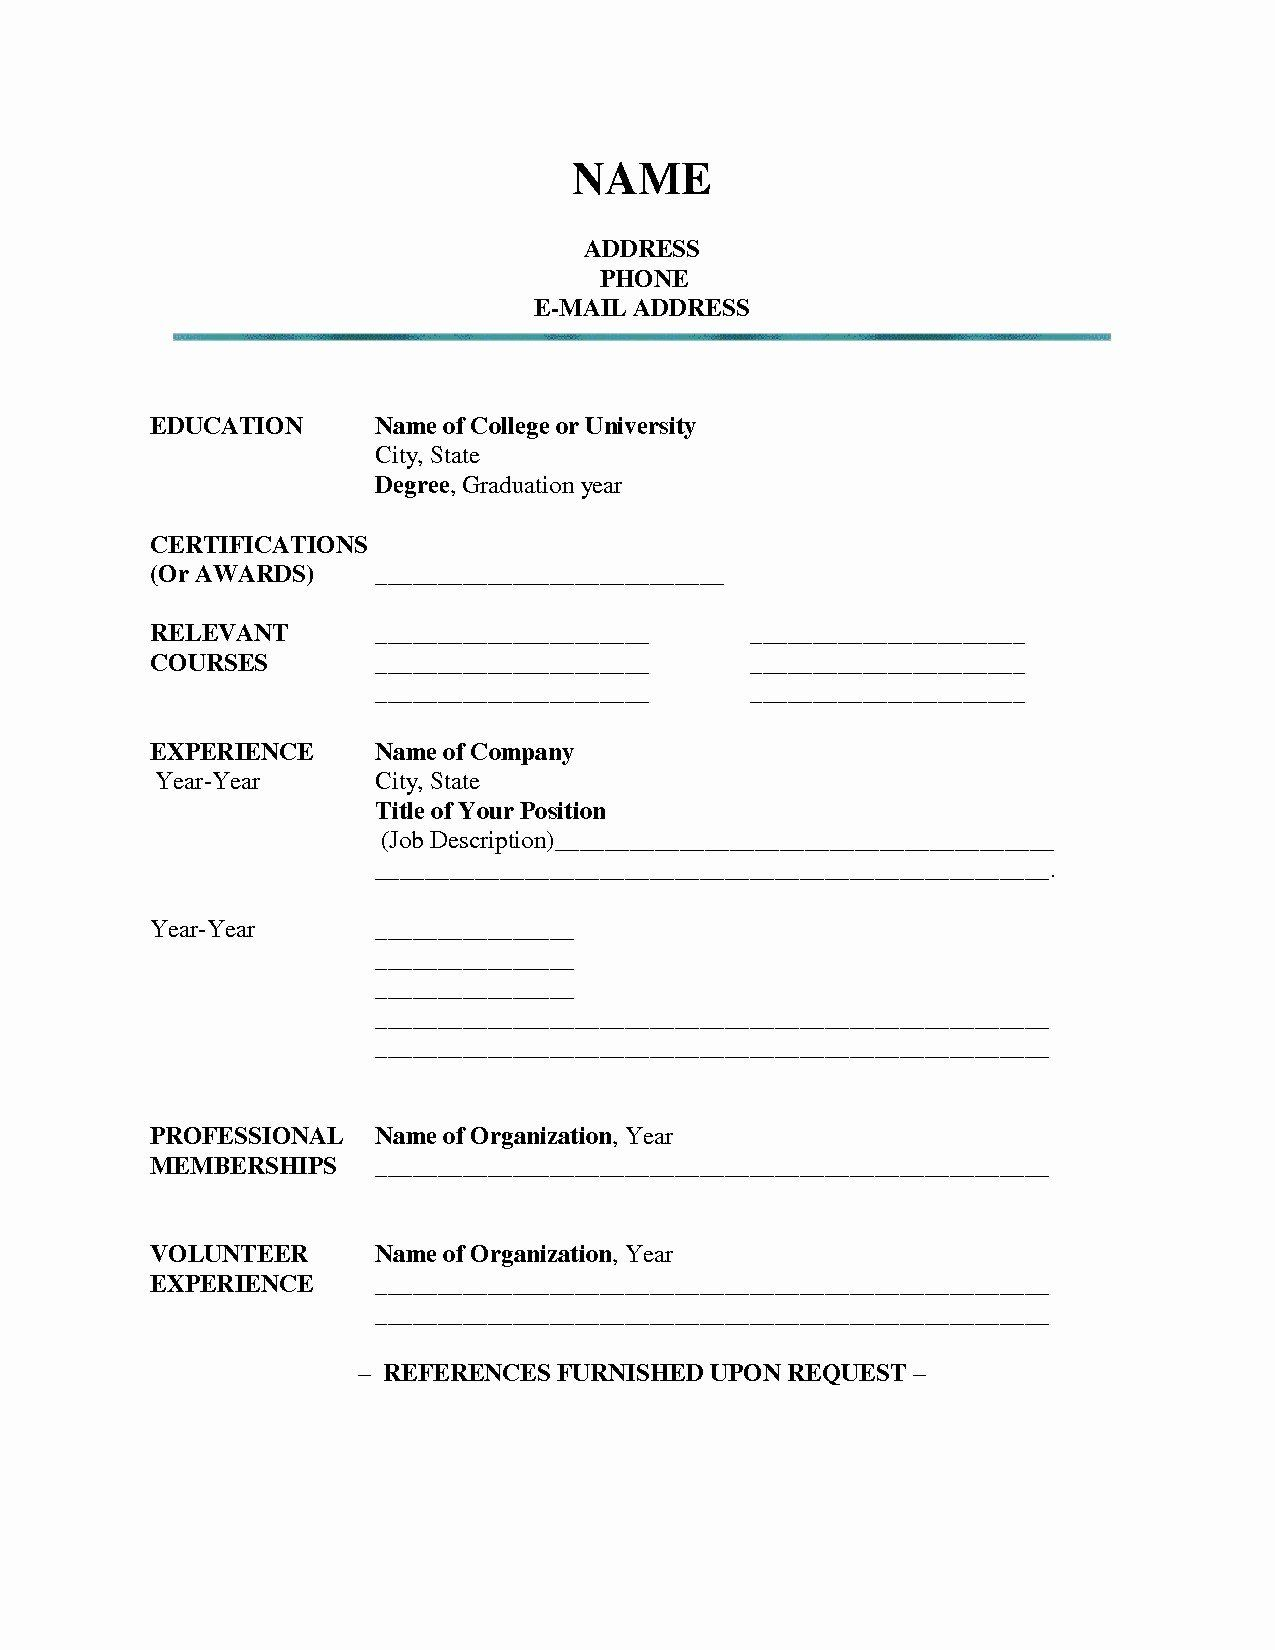 30 Blank Resume Form For Job Application In 2020 Student Resume Template Free Printable Resume Templates Job Resume Template